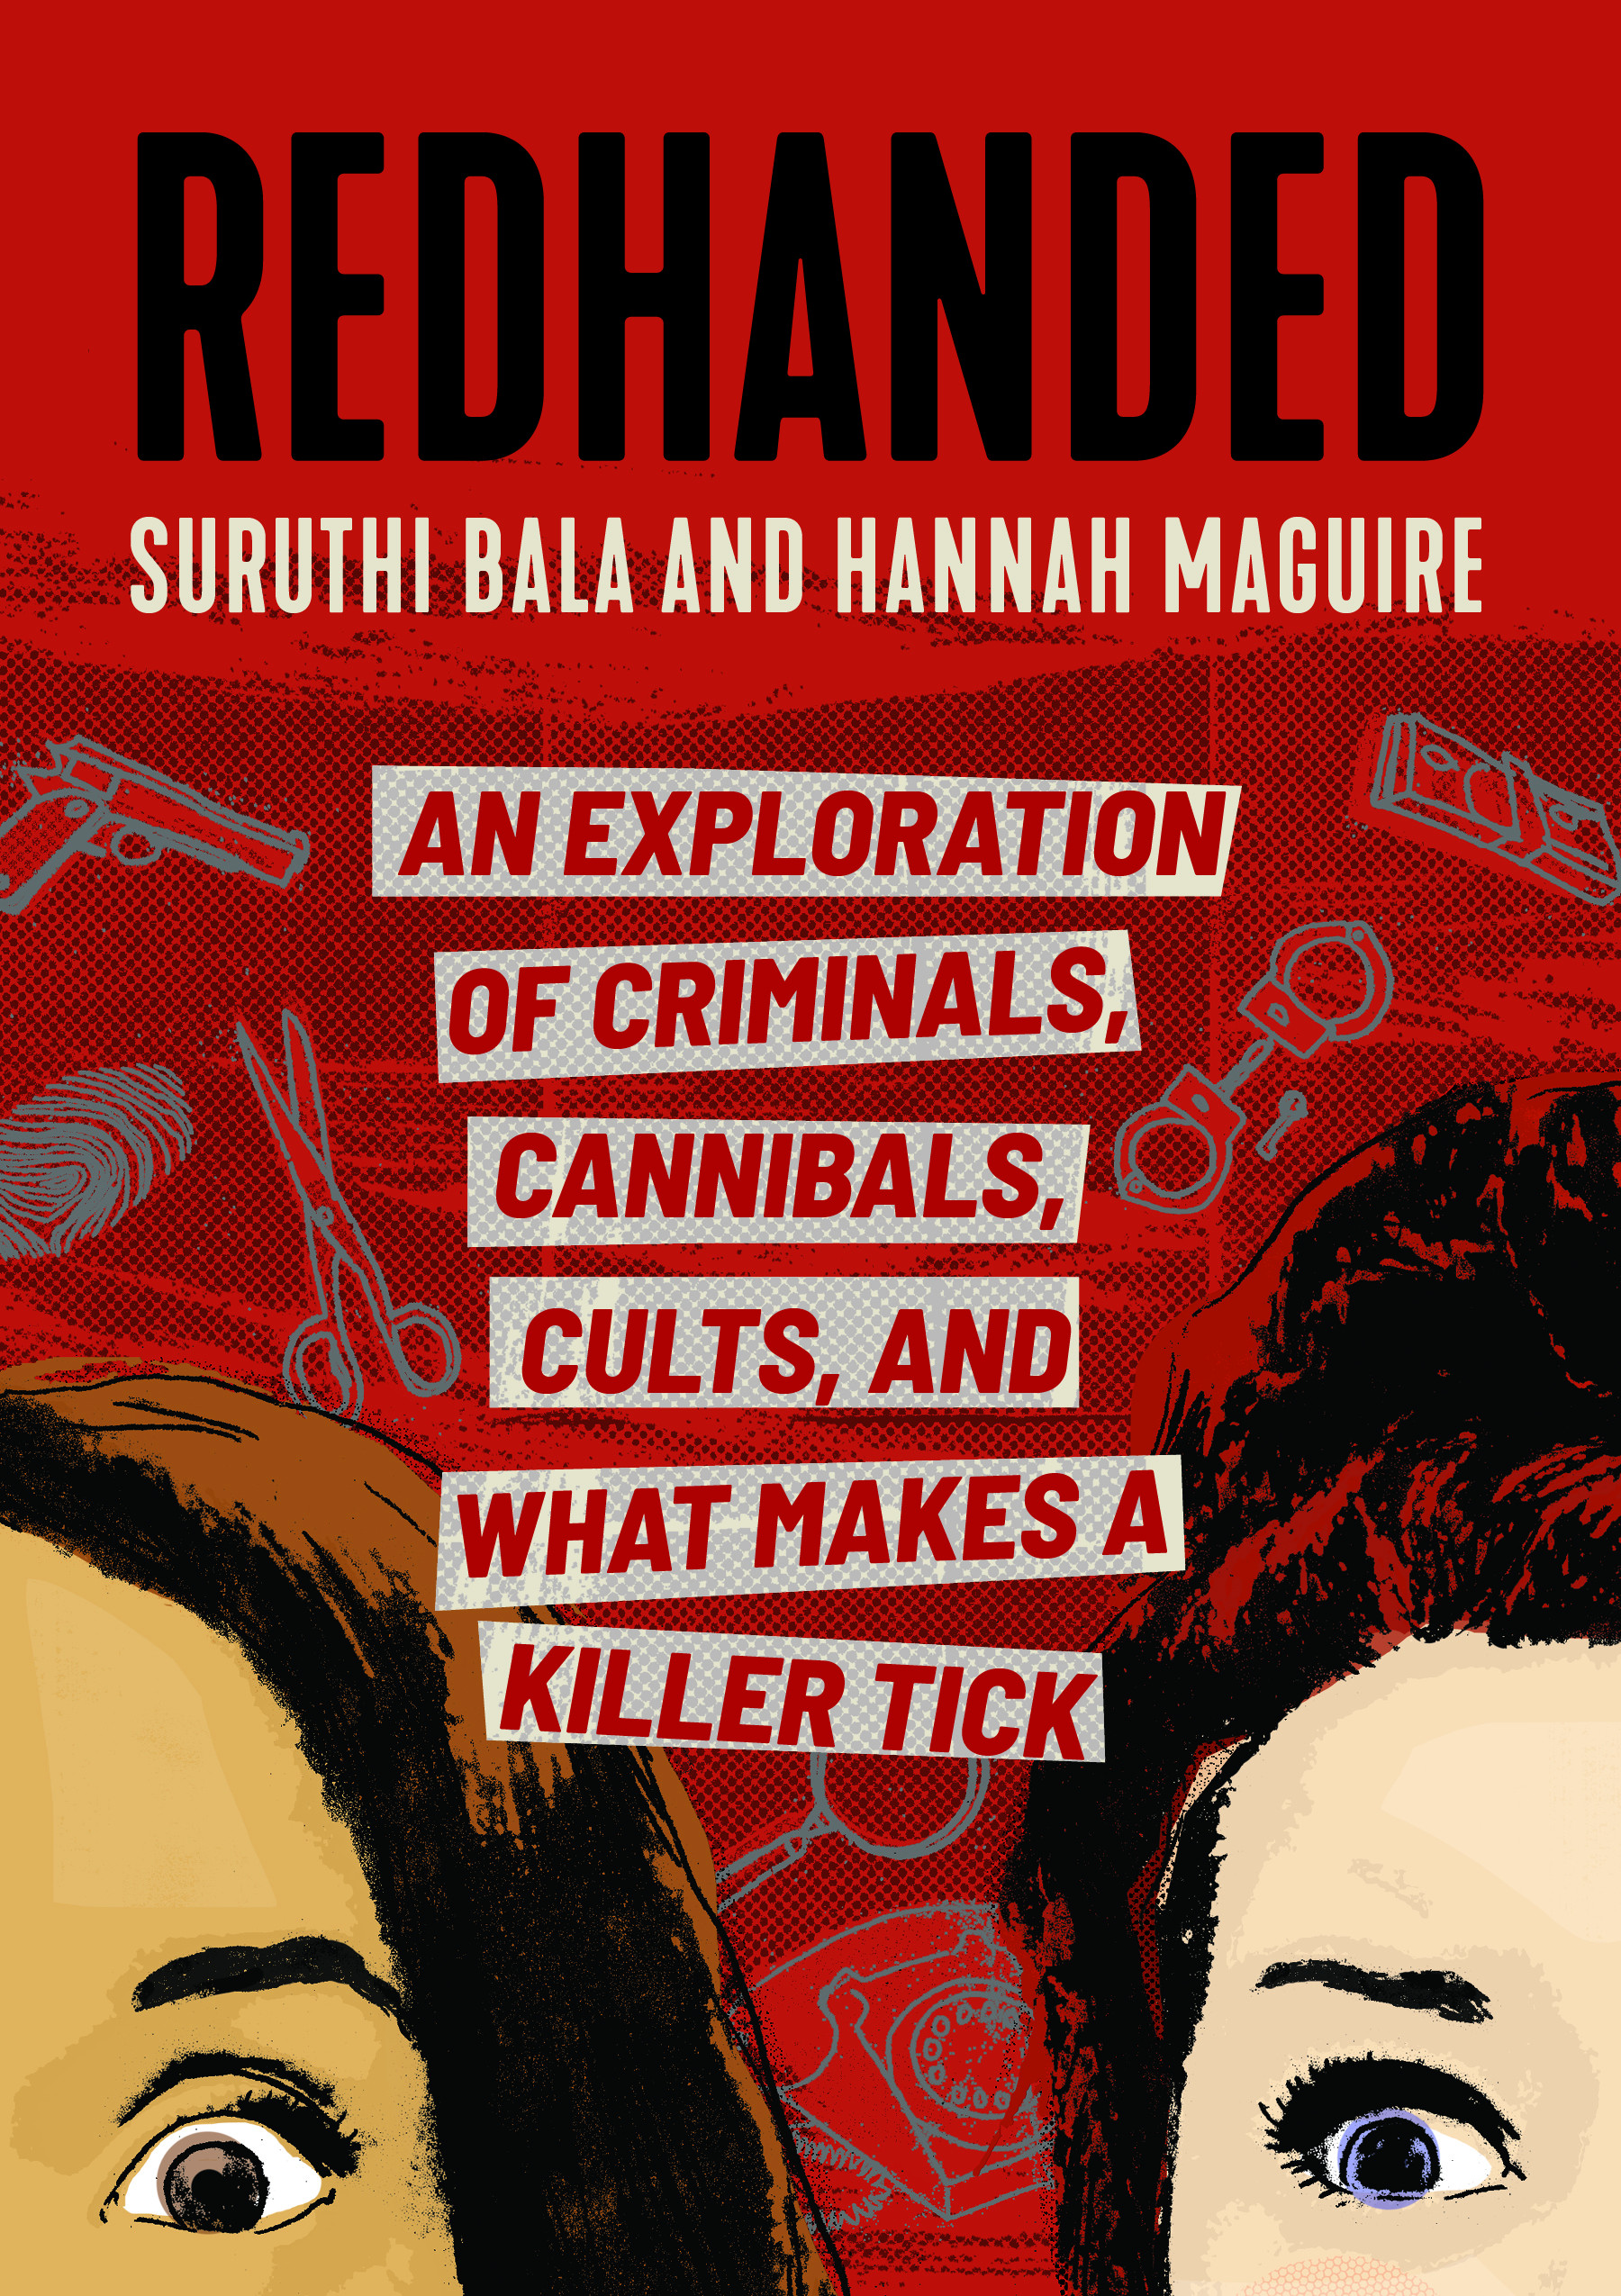 REDHANDED book cover image.jpg